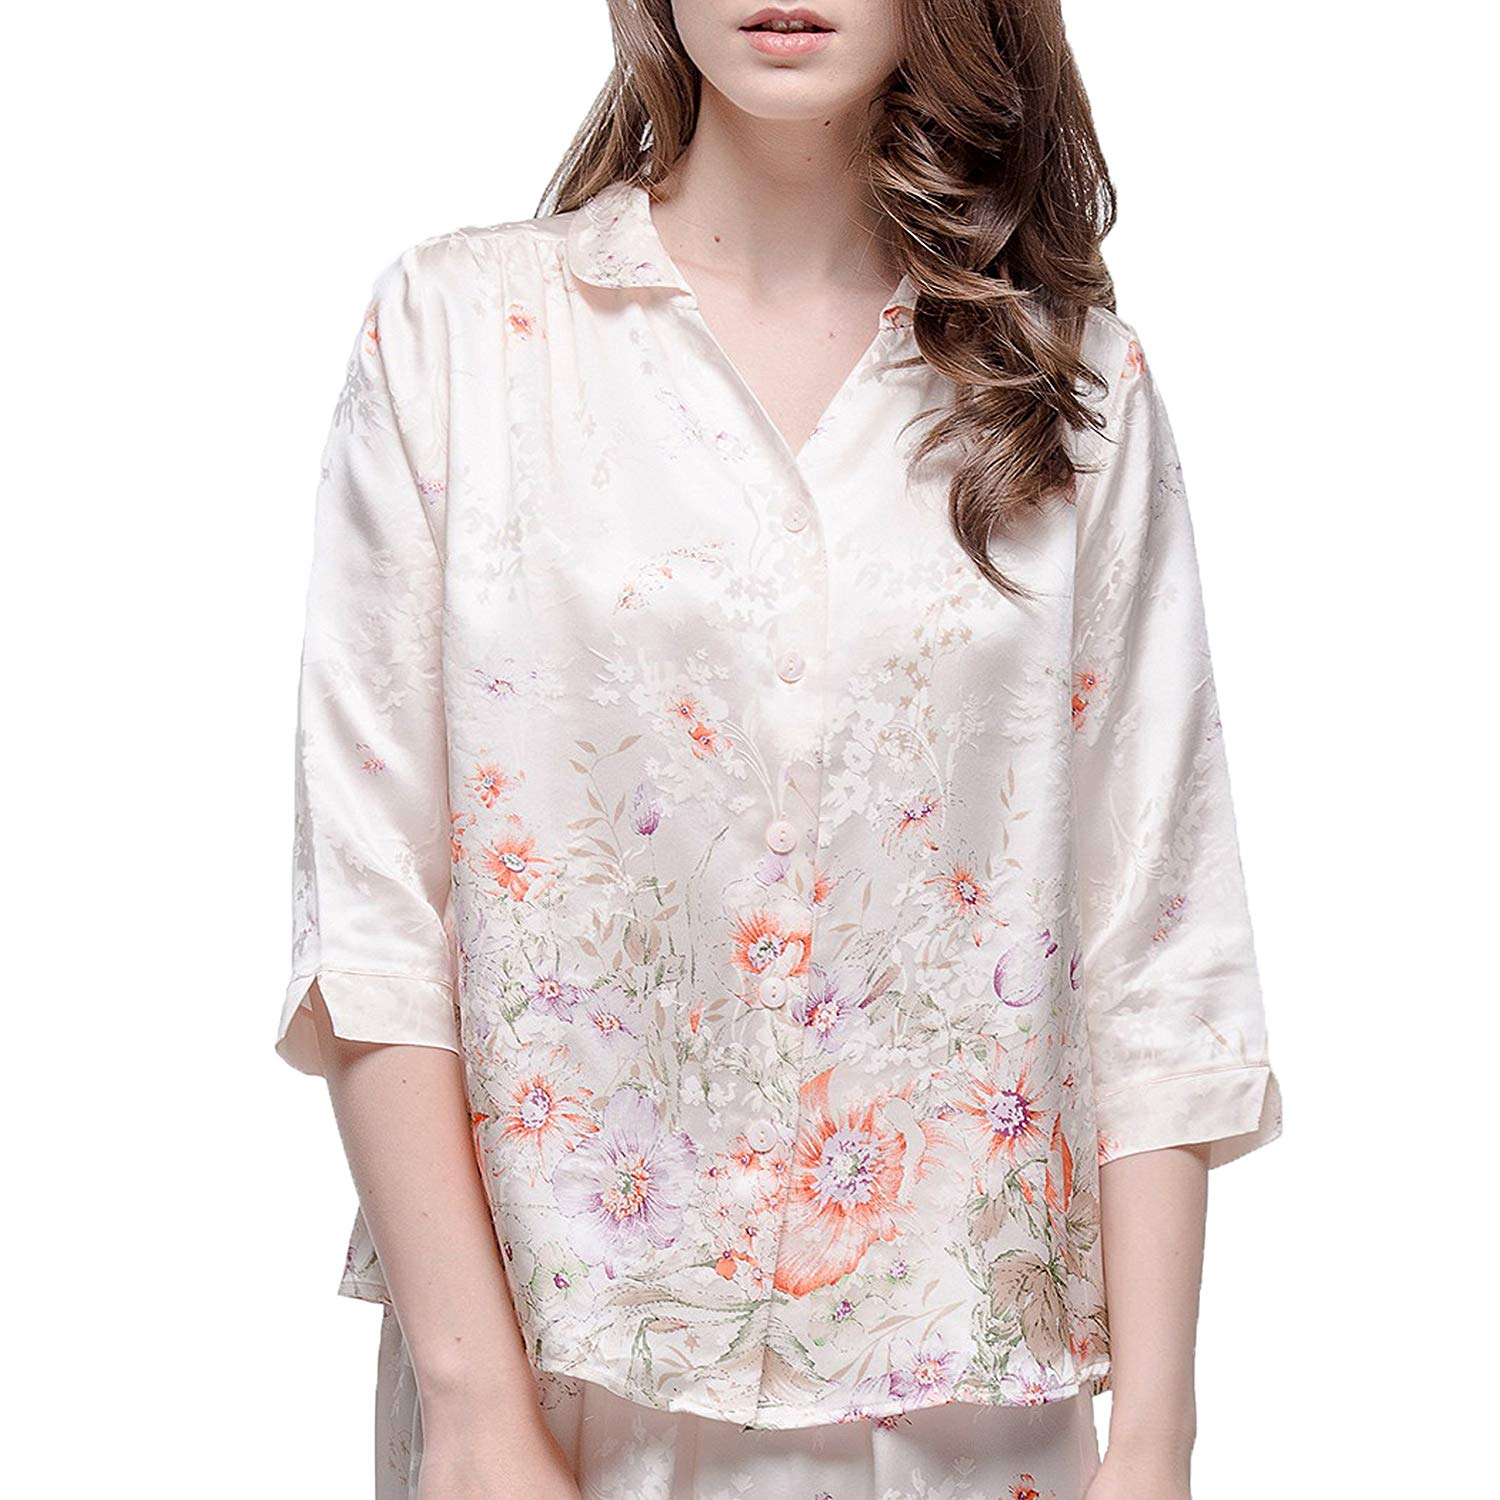 6a611461b5 Chesslyre Women s Luxury Charmeuse Jacquard Foral Print Silk Satin Pajamas  2 Piece Set